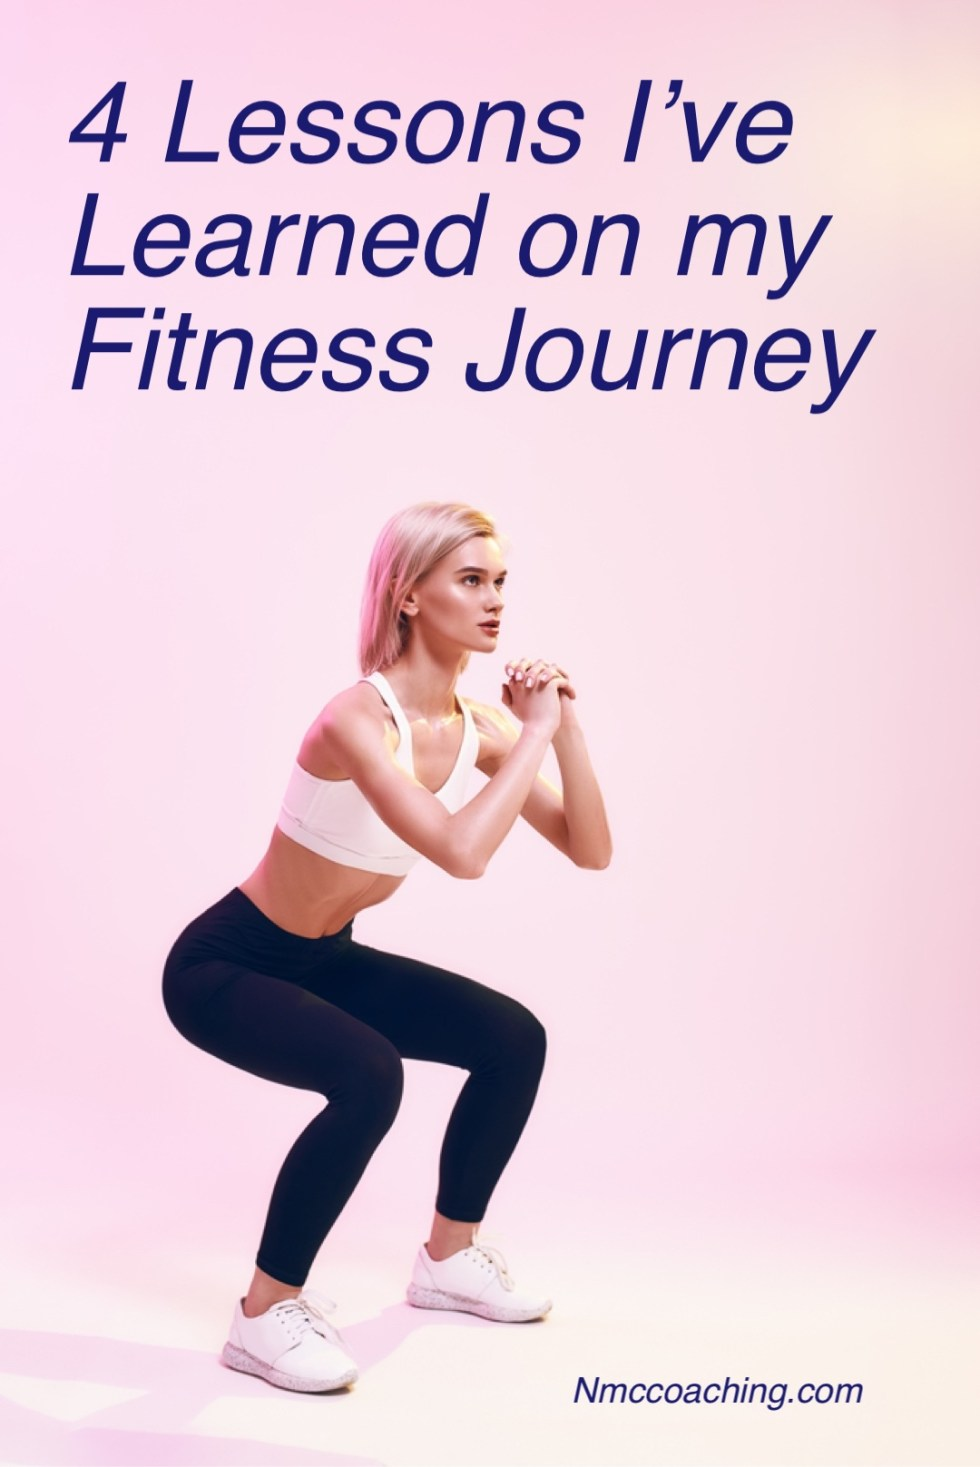 4 Lessons I've Learned on my fitness journey